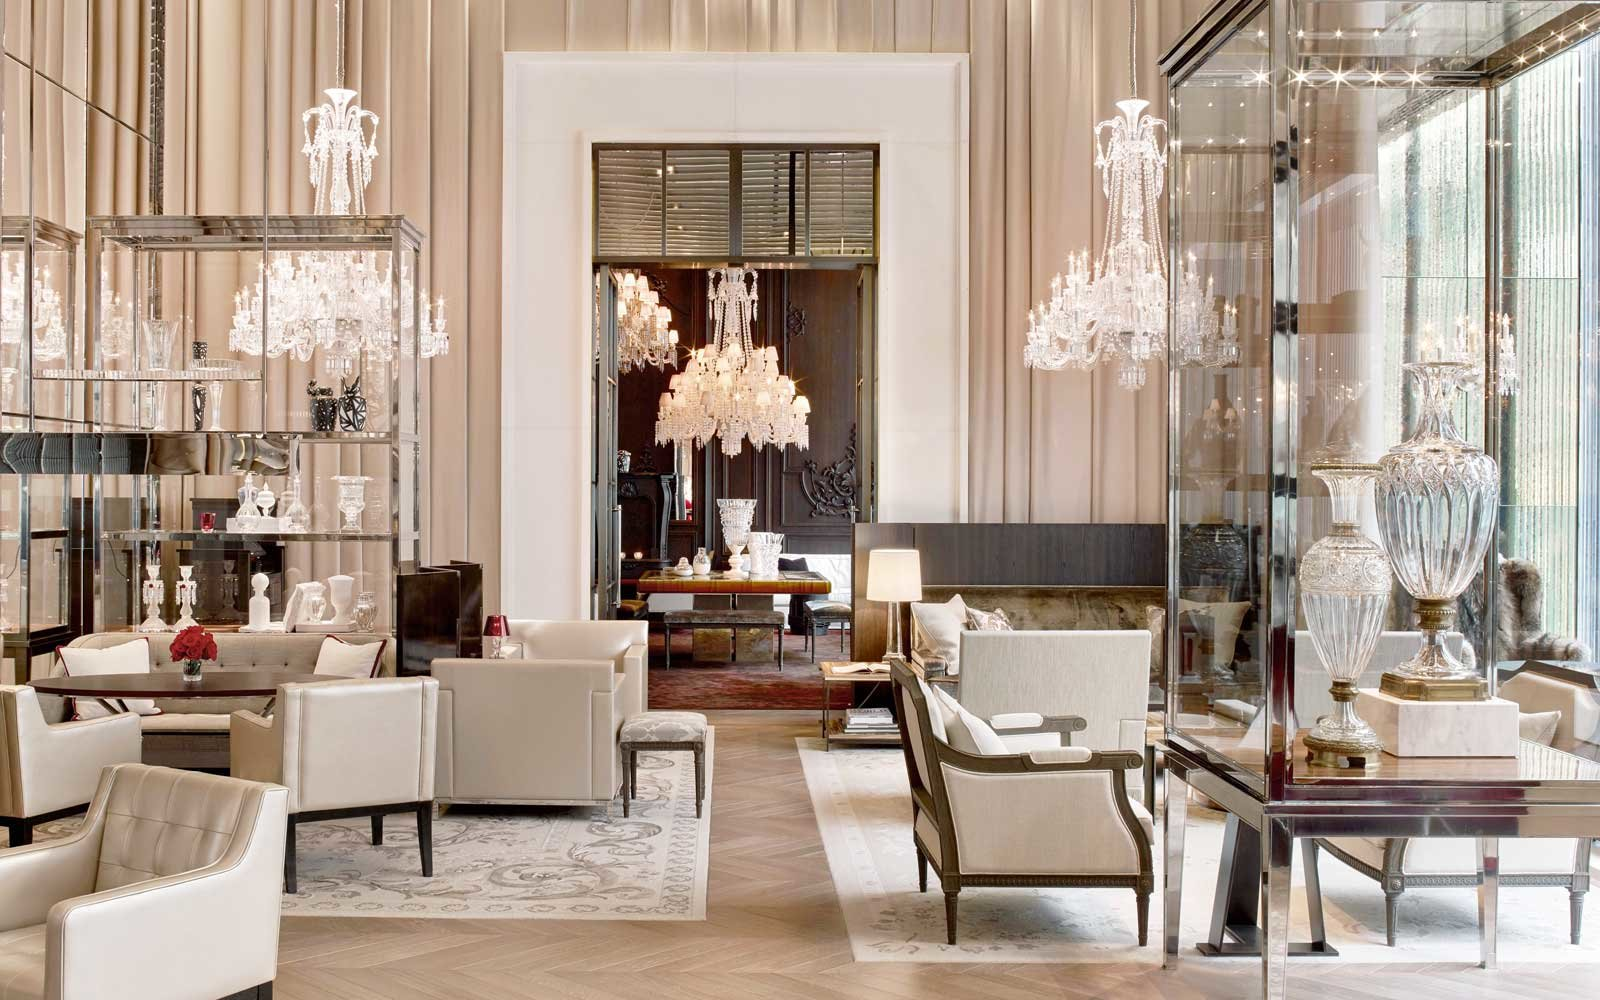 Grand salon of the Baccarat Hotel